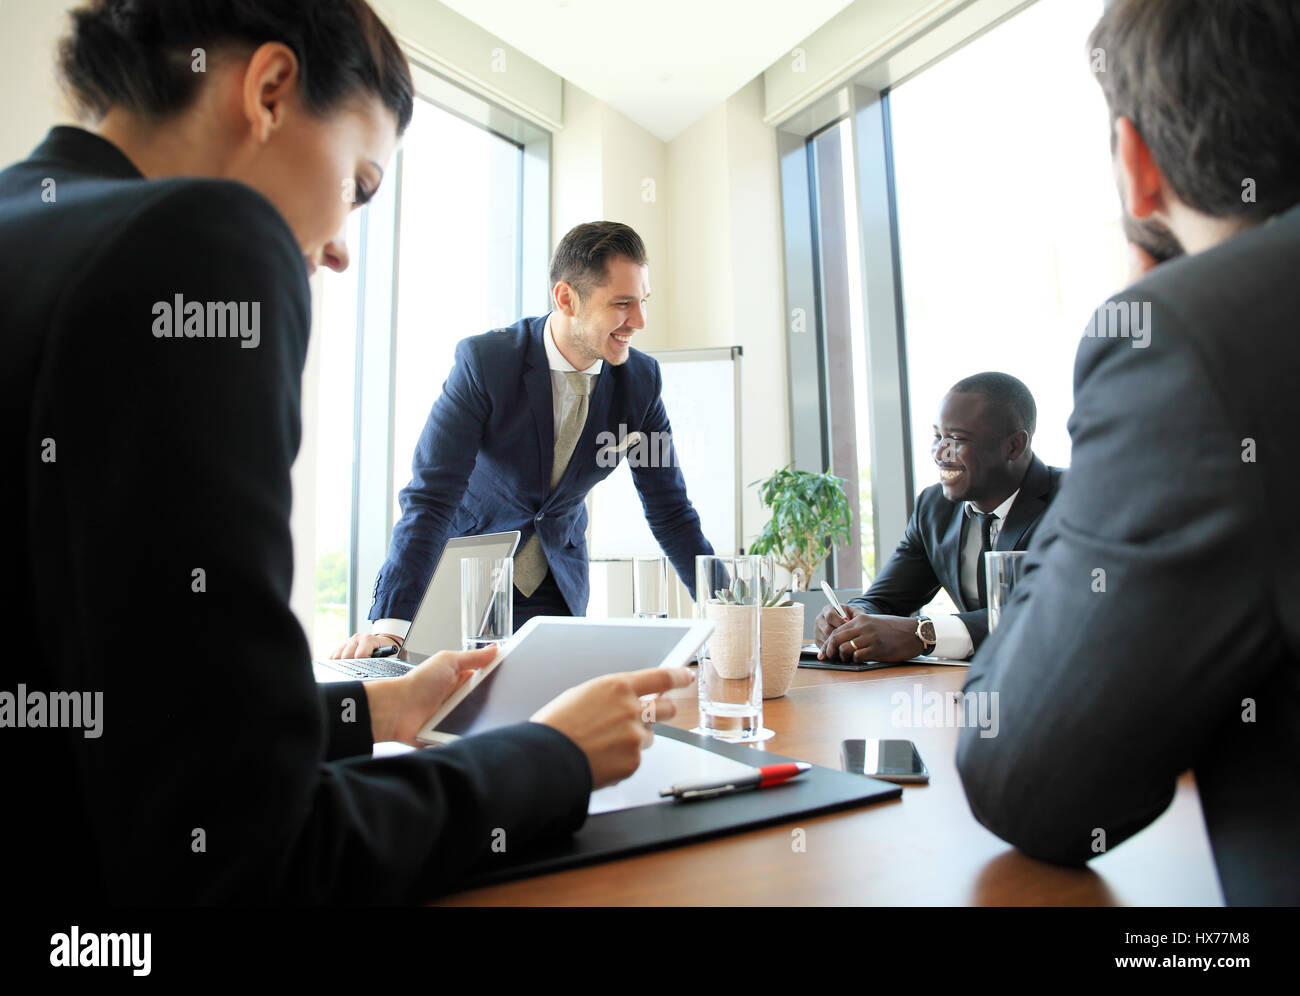 Entrepreneurs and business people conference in modern meeting room. - Stock Image